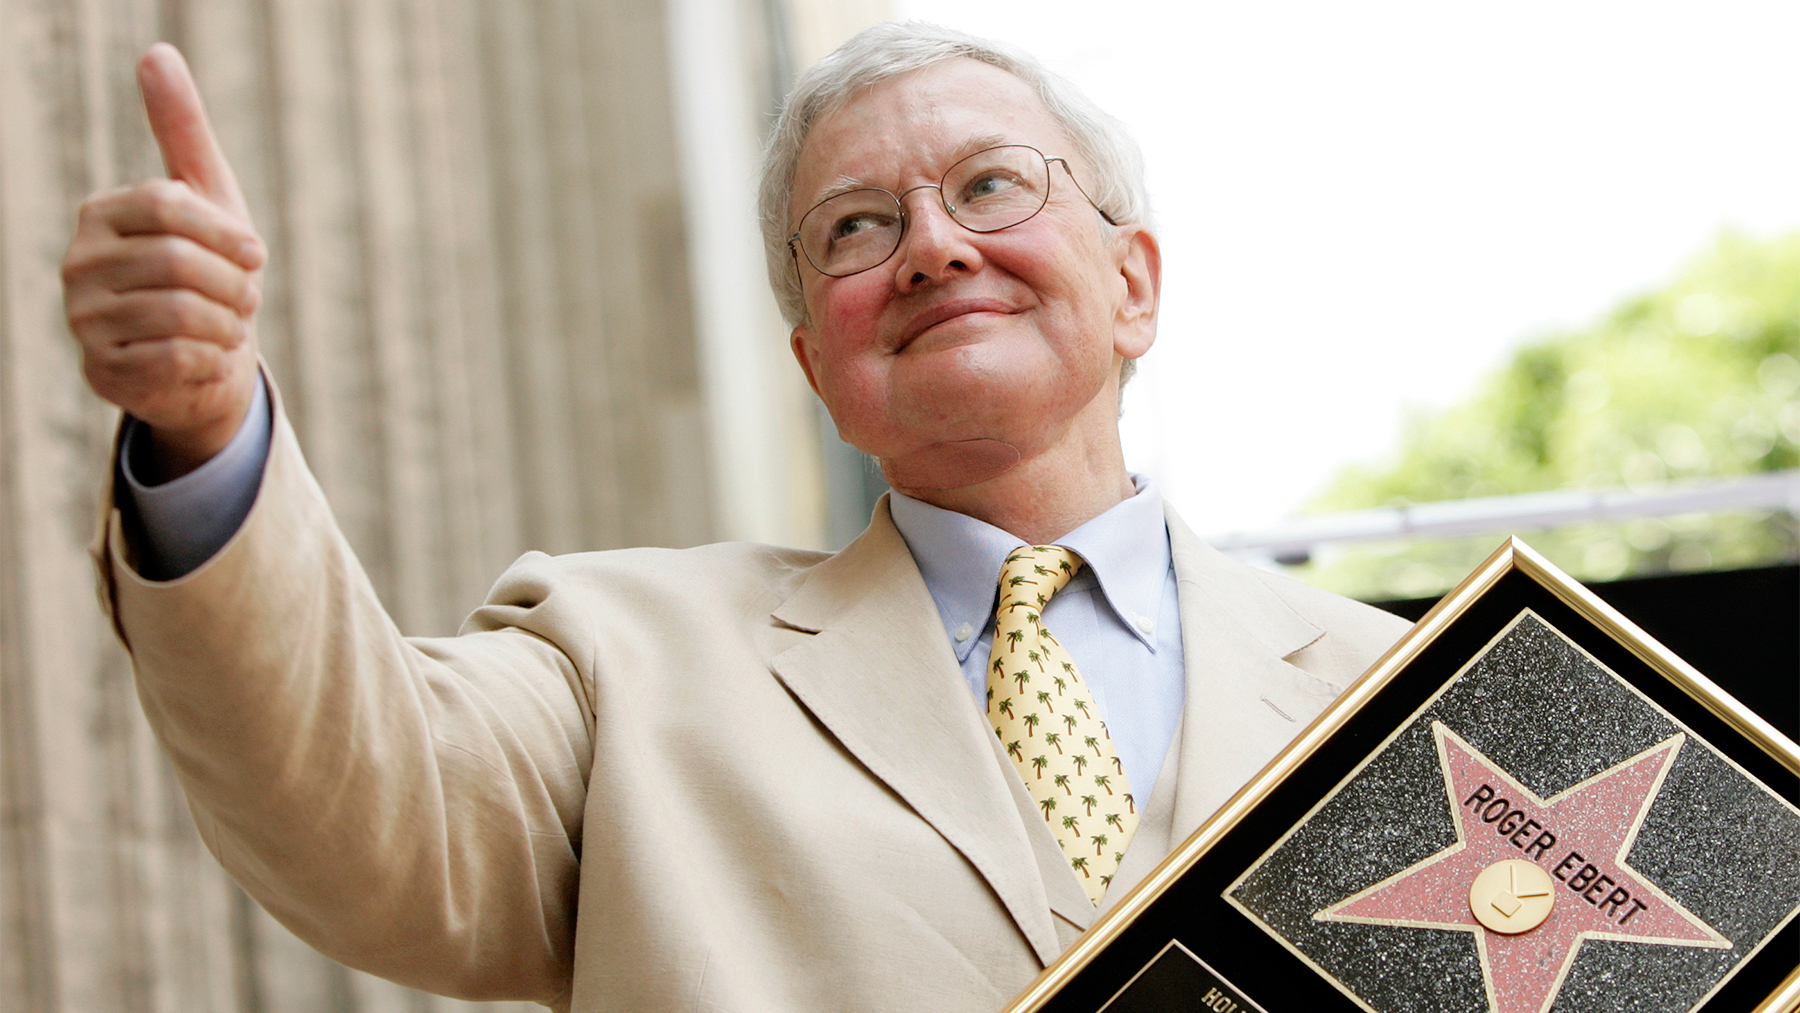 the late Rober Ebert giving his signature 'thumbs-up'